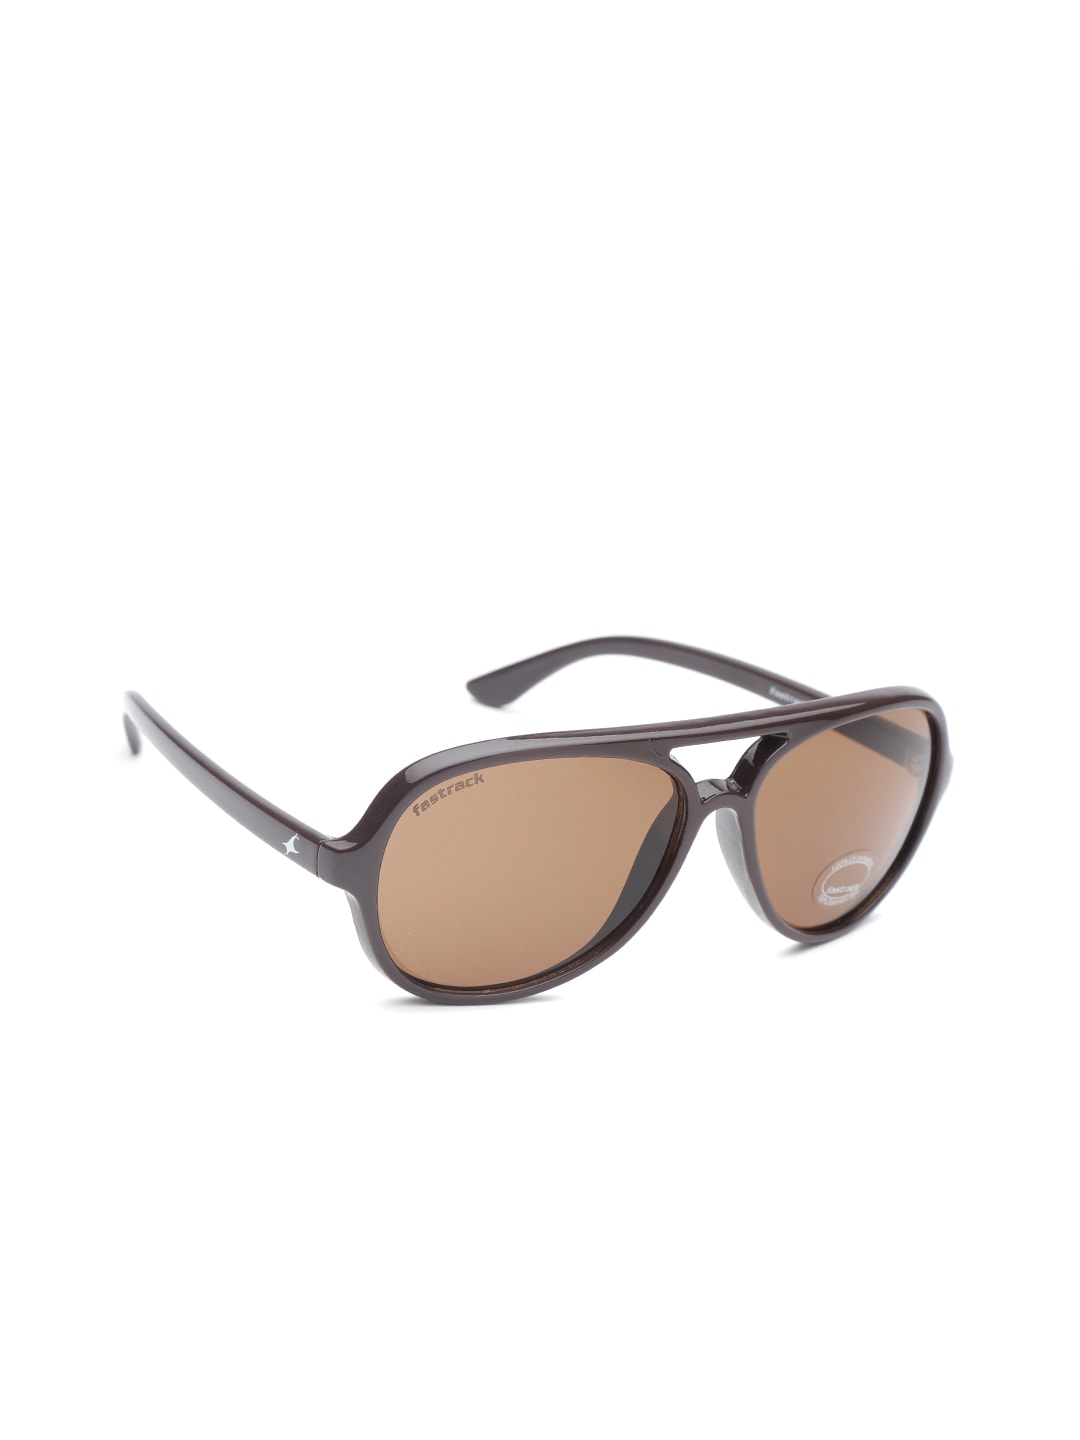 48836df5c5 Fastrack Sunglasses - Buy Fastrack Sunglasses Online